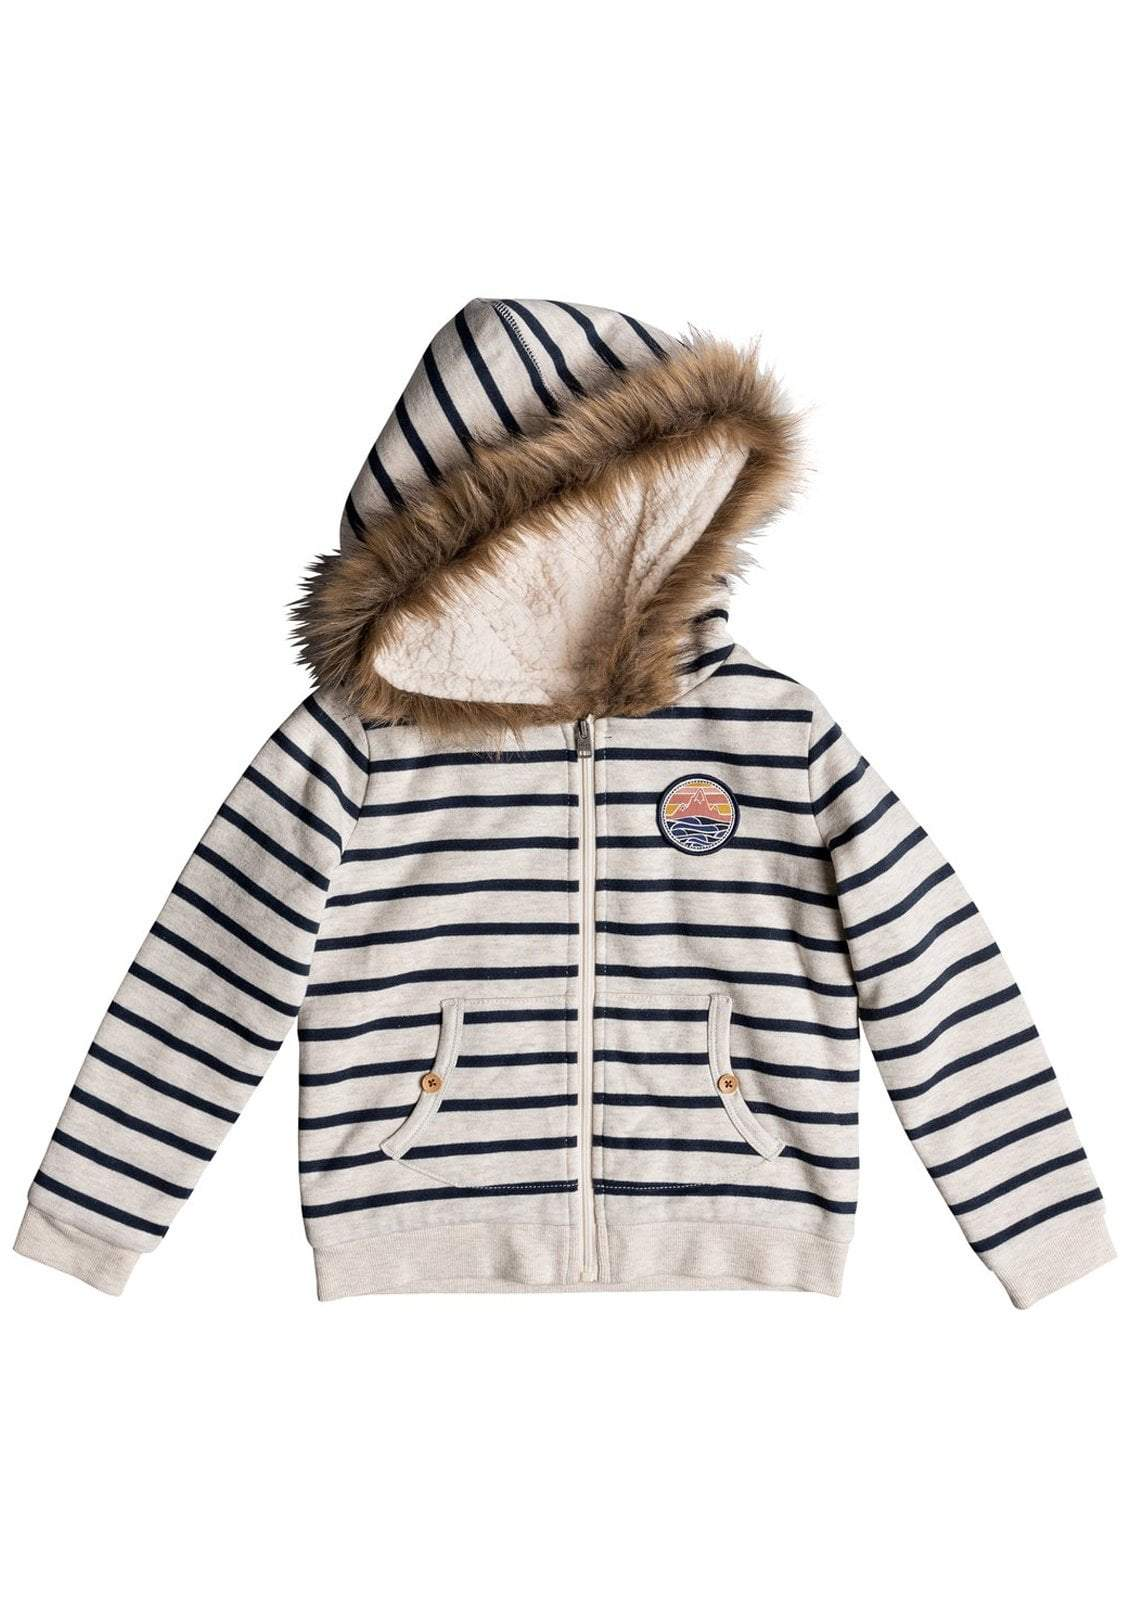 Little girl's Slumber Party Zip-up Sherpa Lined Hoodie